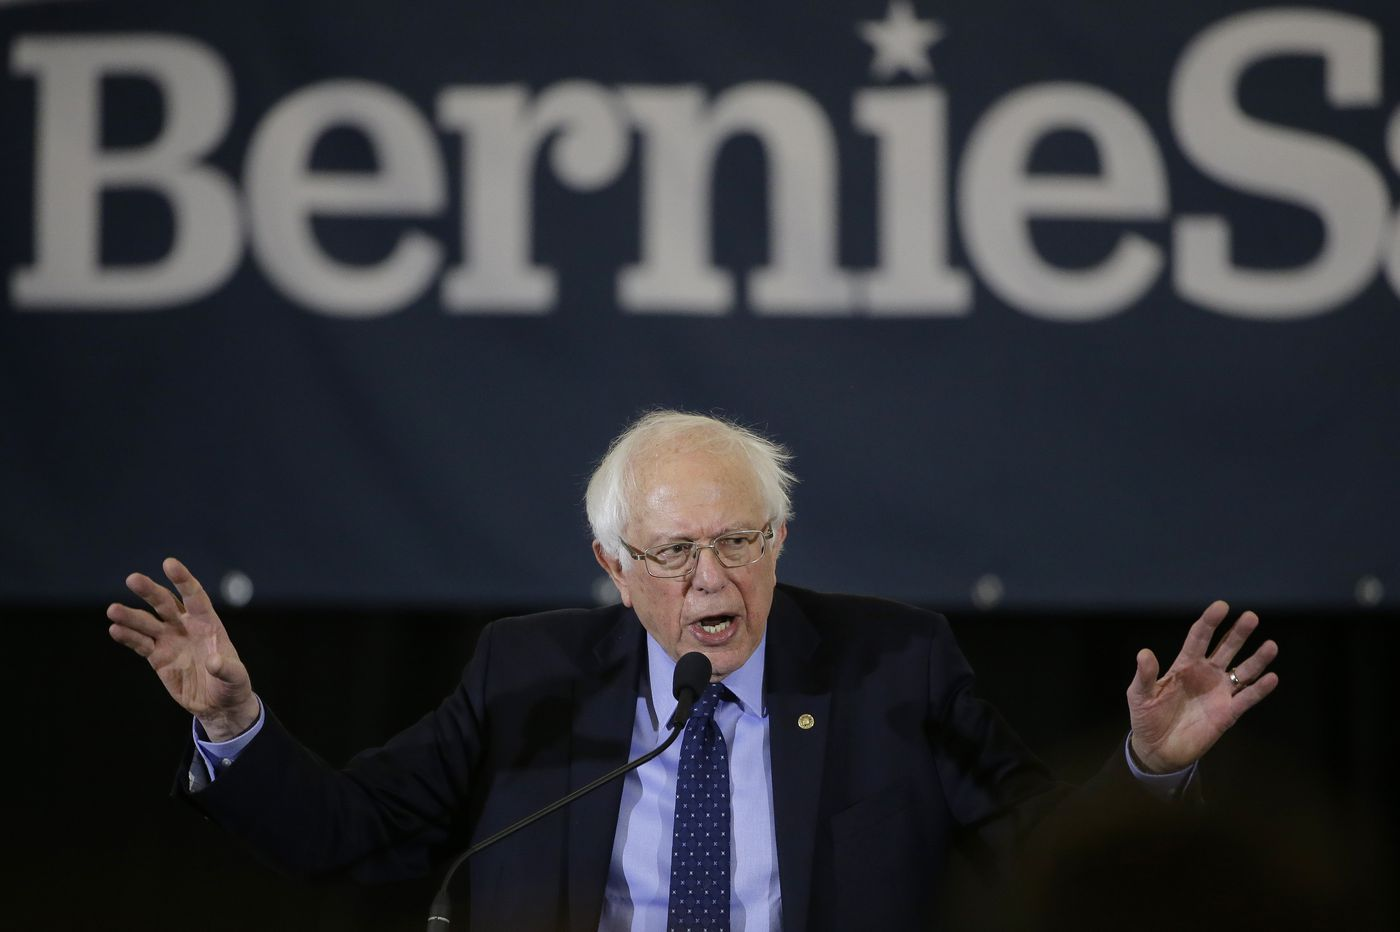 Bernie Sanders' campaign escalates feud with top liberal think tank